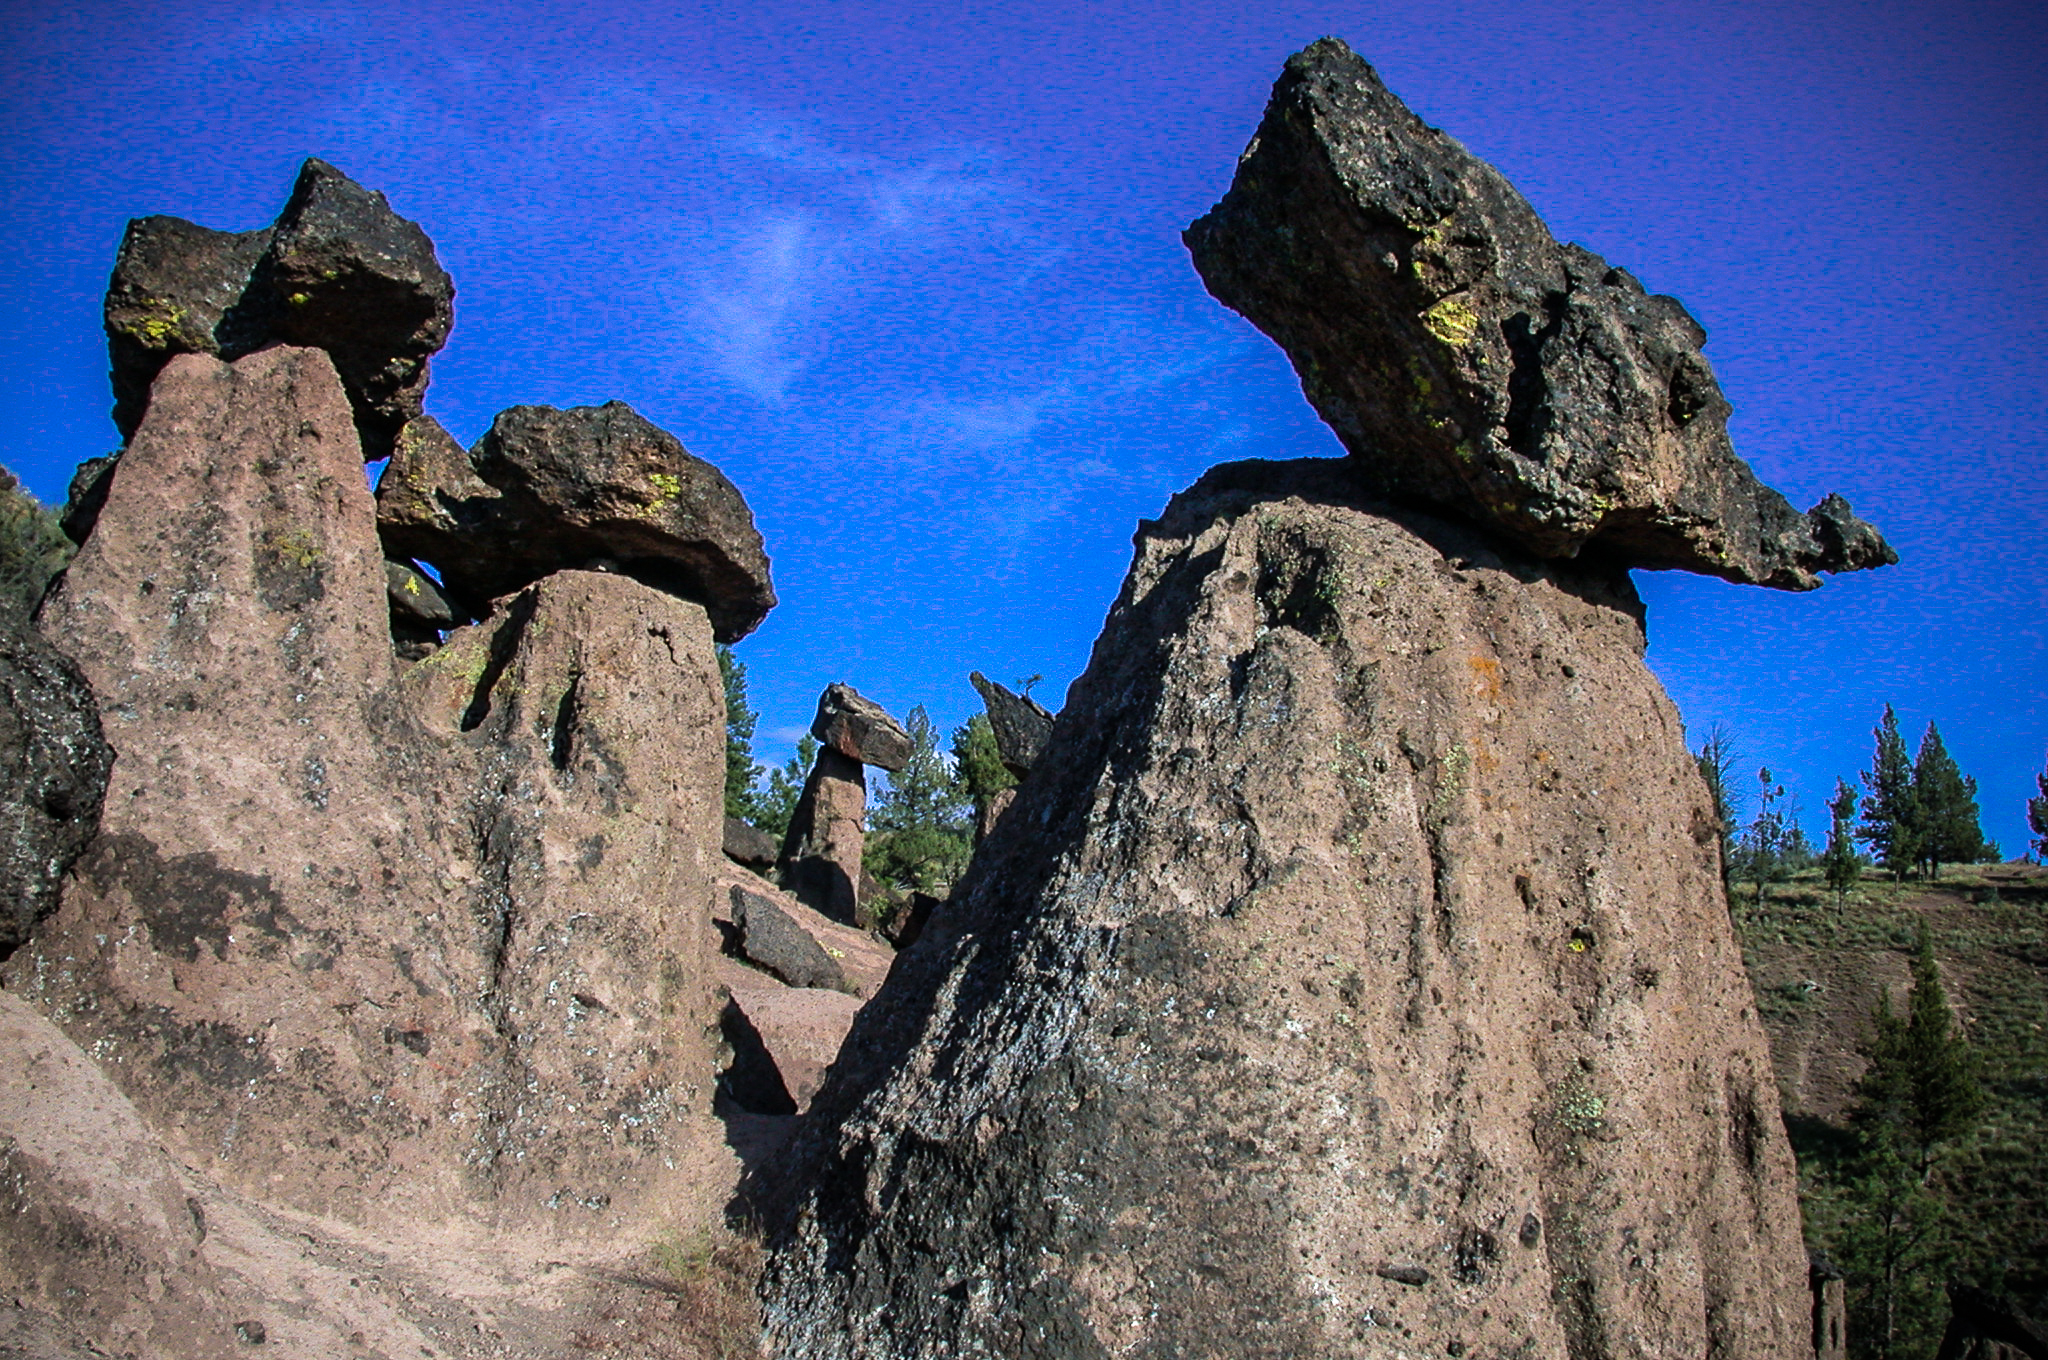 Balanced Rocks on the Deschutes National Forest (USDA Forest Service)